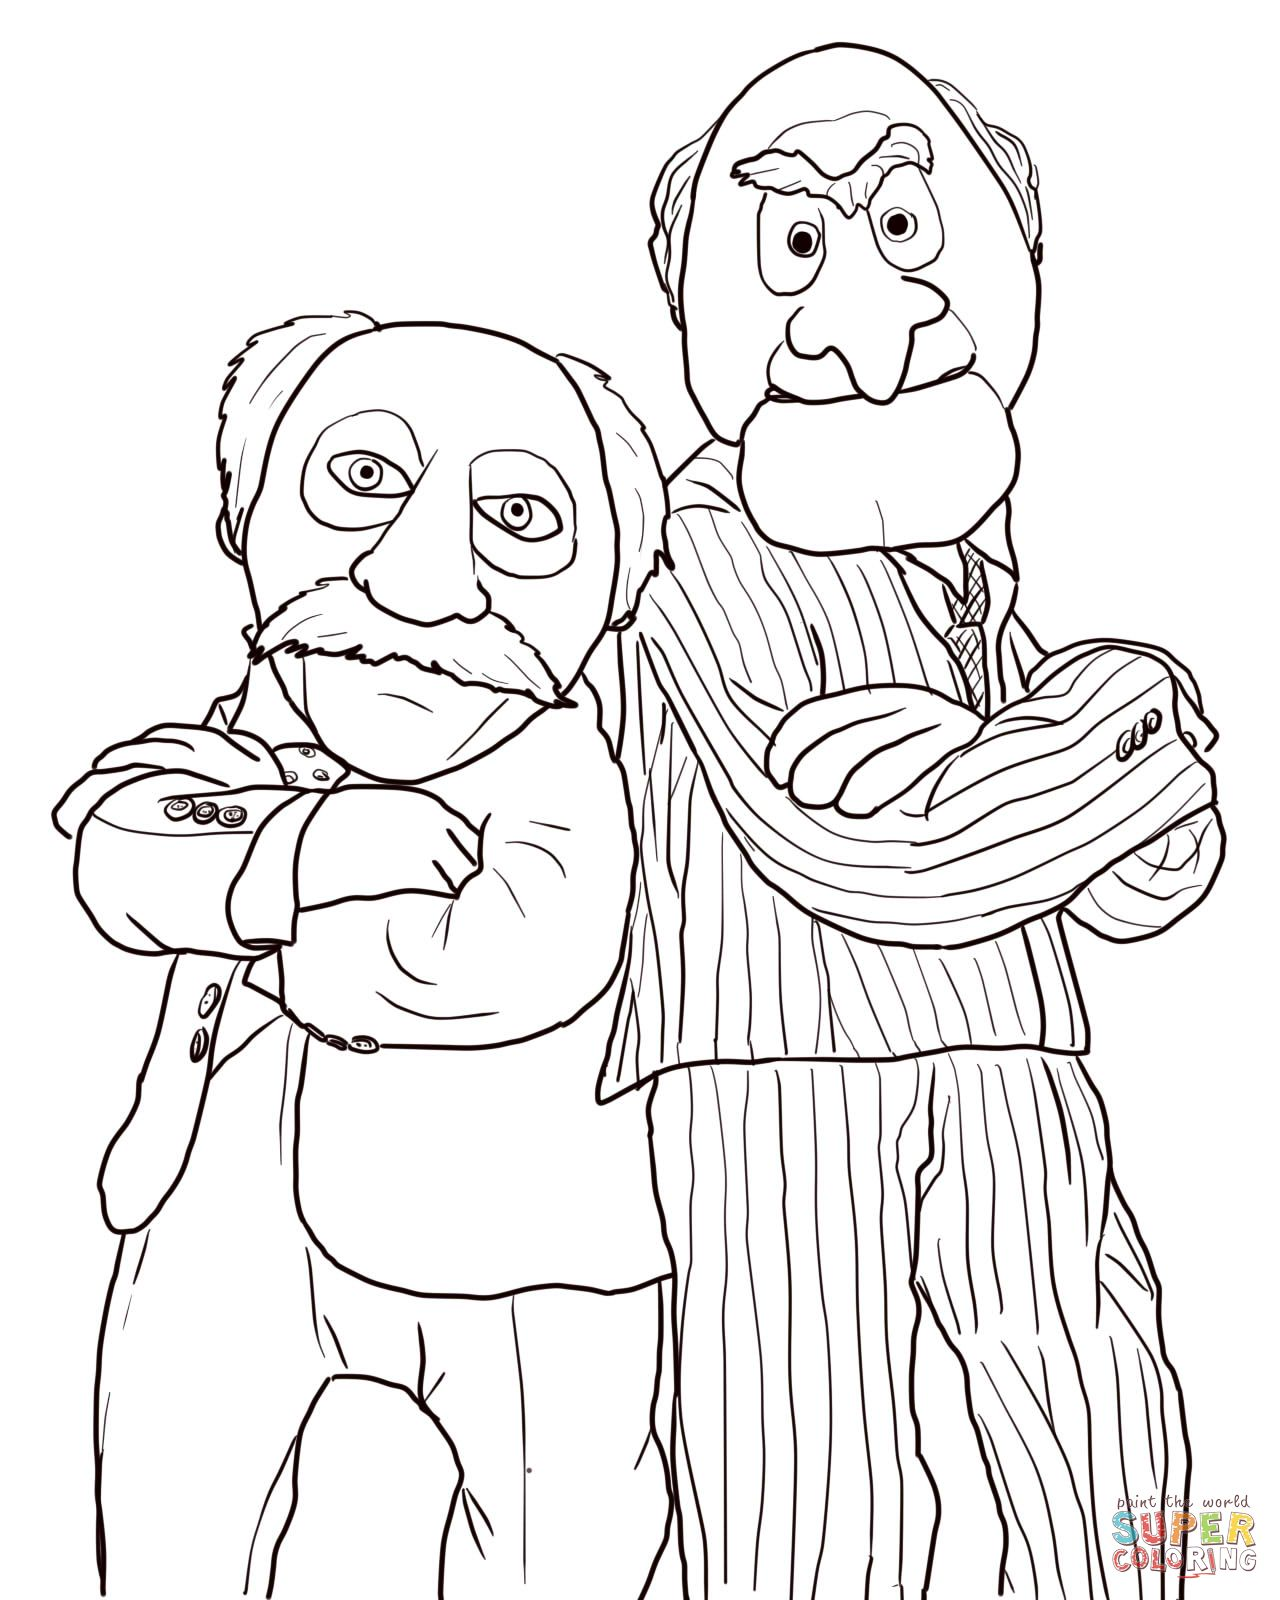 statler and waldorf coloring pages 5 colouring pictures